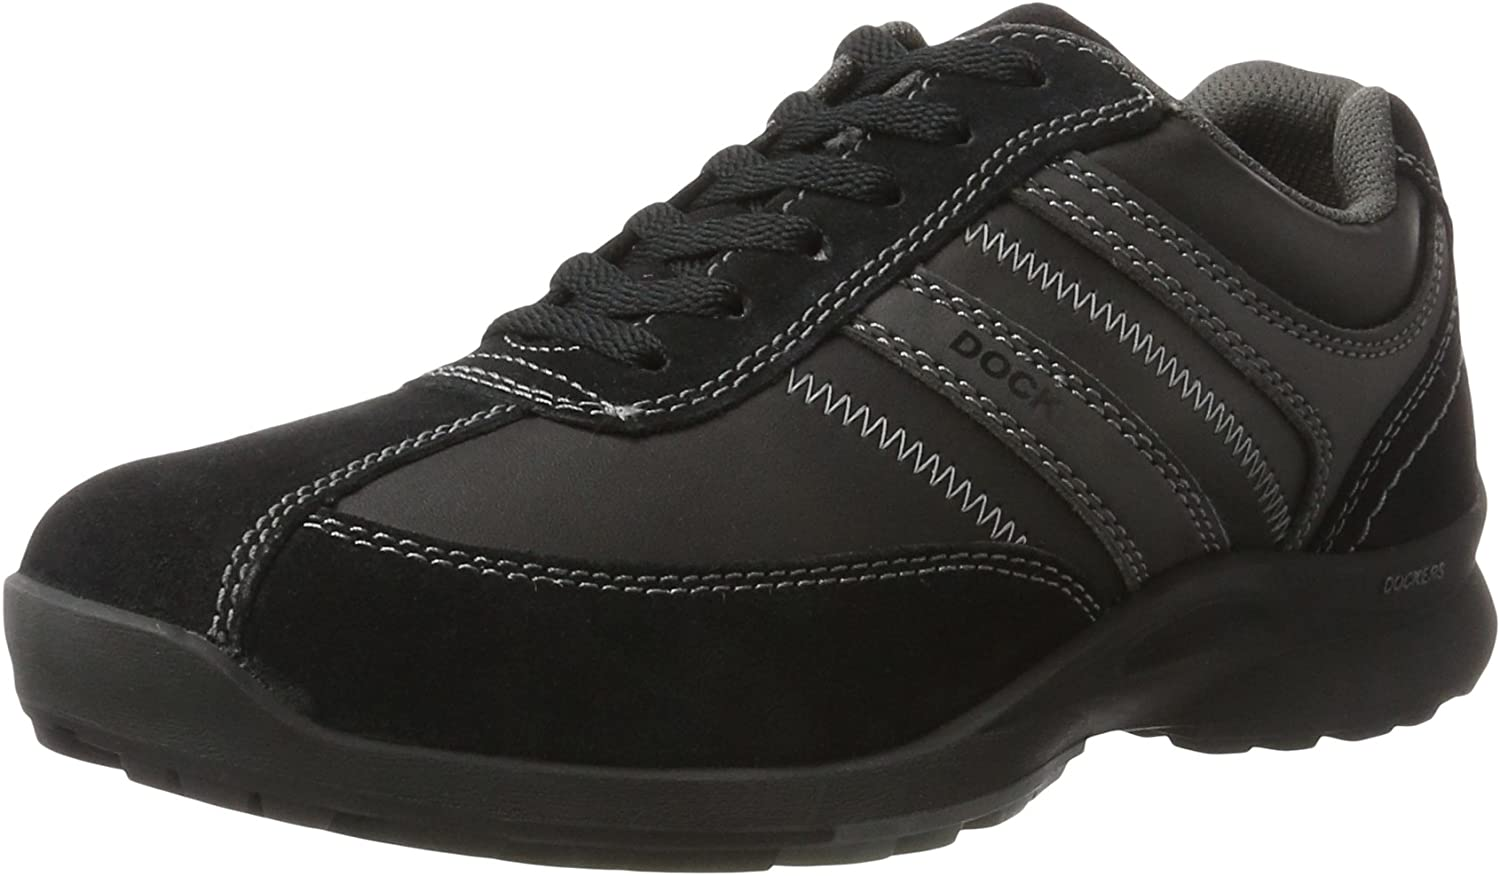 Dockers by Gerli, Men's Lace-Up shoes